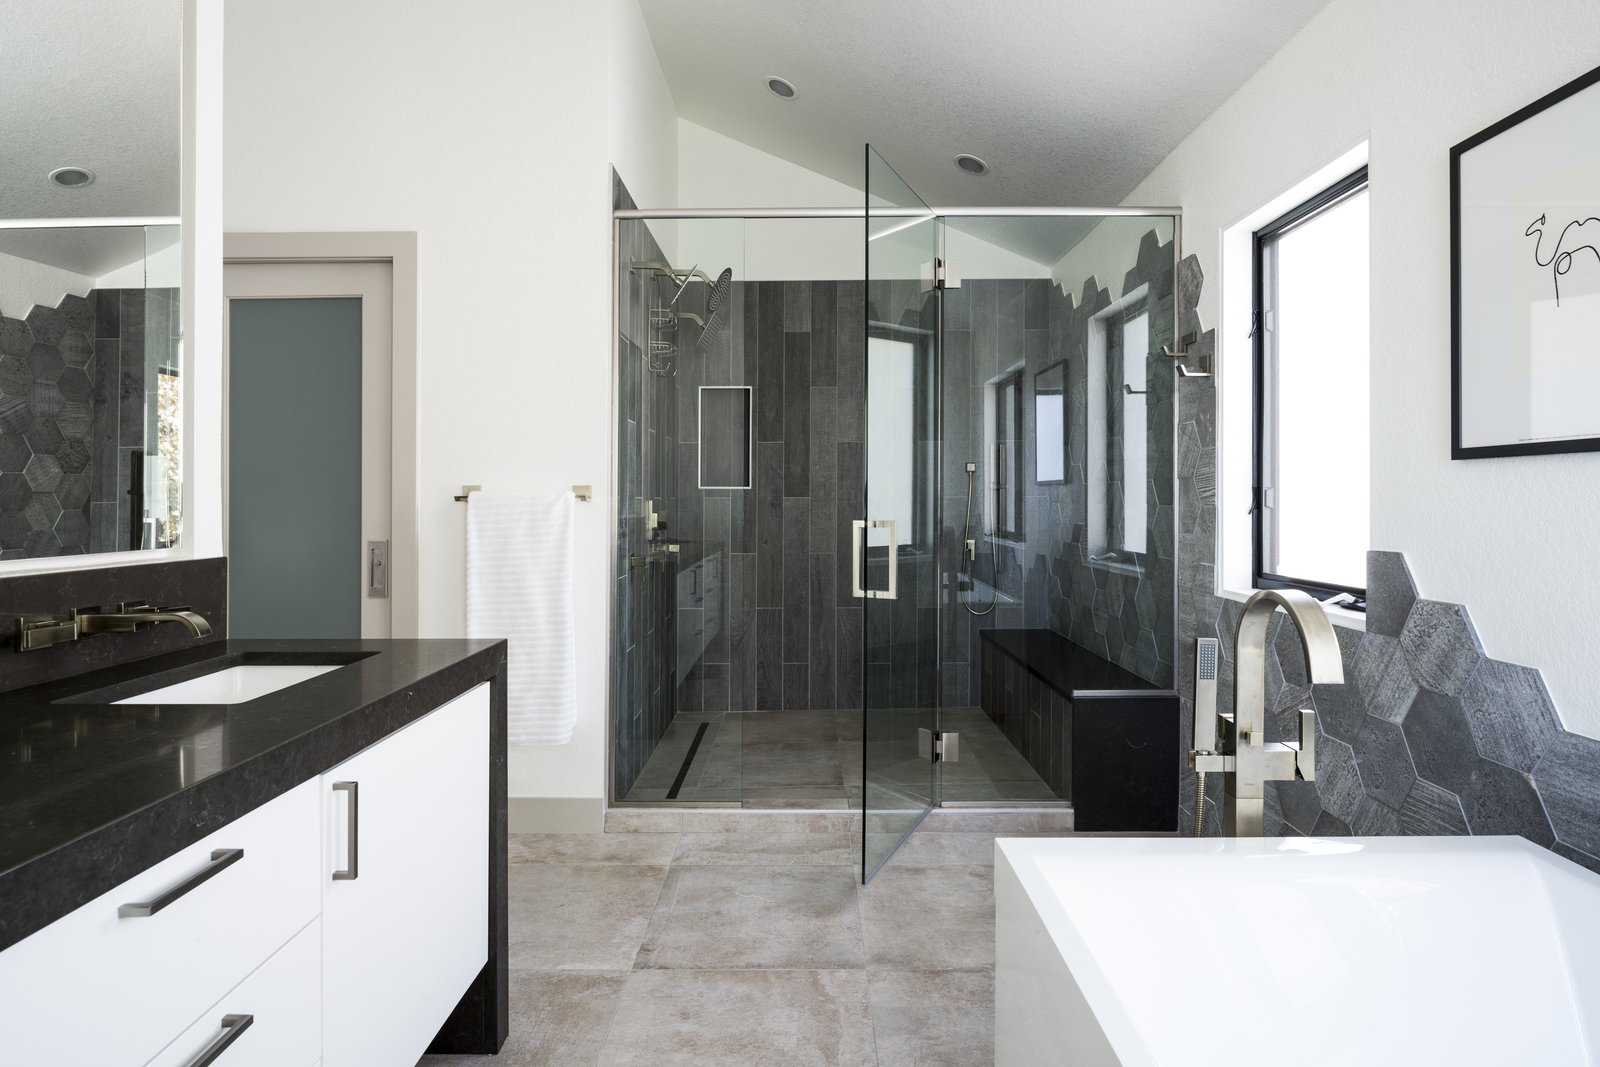 Bath, Porcelain Tile, Porcelain Tile, Freestanding, Undermount, Engineered Quartz, Full, Enclosed, and Recessed Master bathroom suite. Gloss white vanity with dark quartz waterfall countertop. Hexagon tile drops down wall from shower enclosure to tub surround.   Best Bath Recessed Undermount Photos